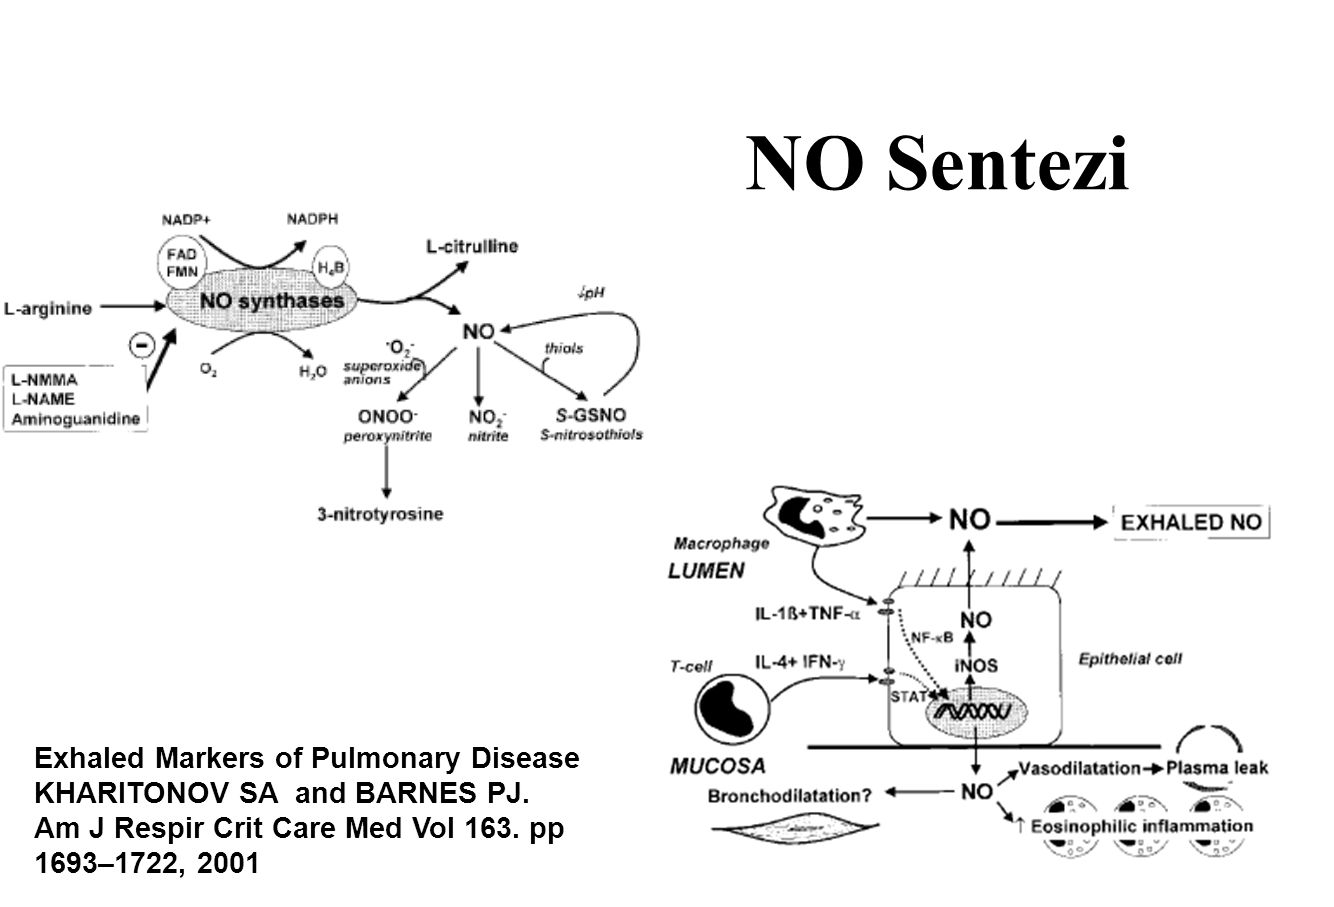 NO Sentezi Exhaled Markers of Pulmonary Disease KHARITONOV SA and BARNES PJ.